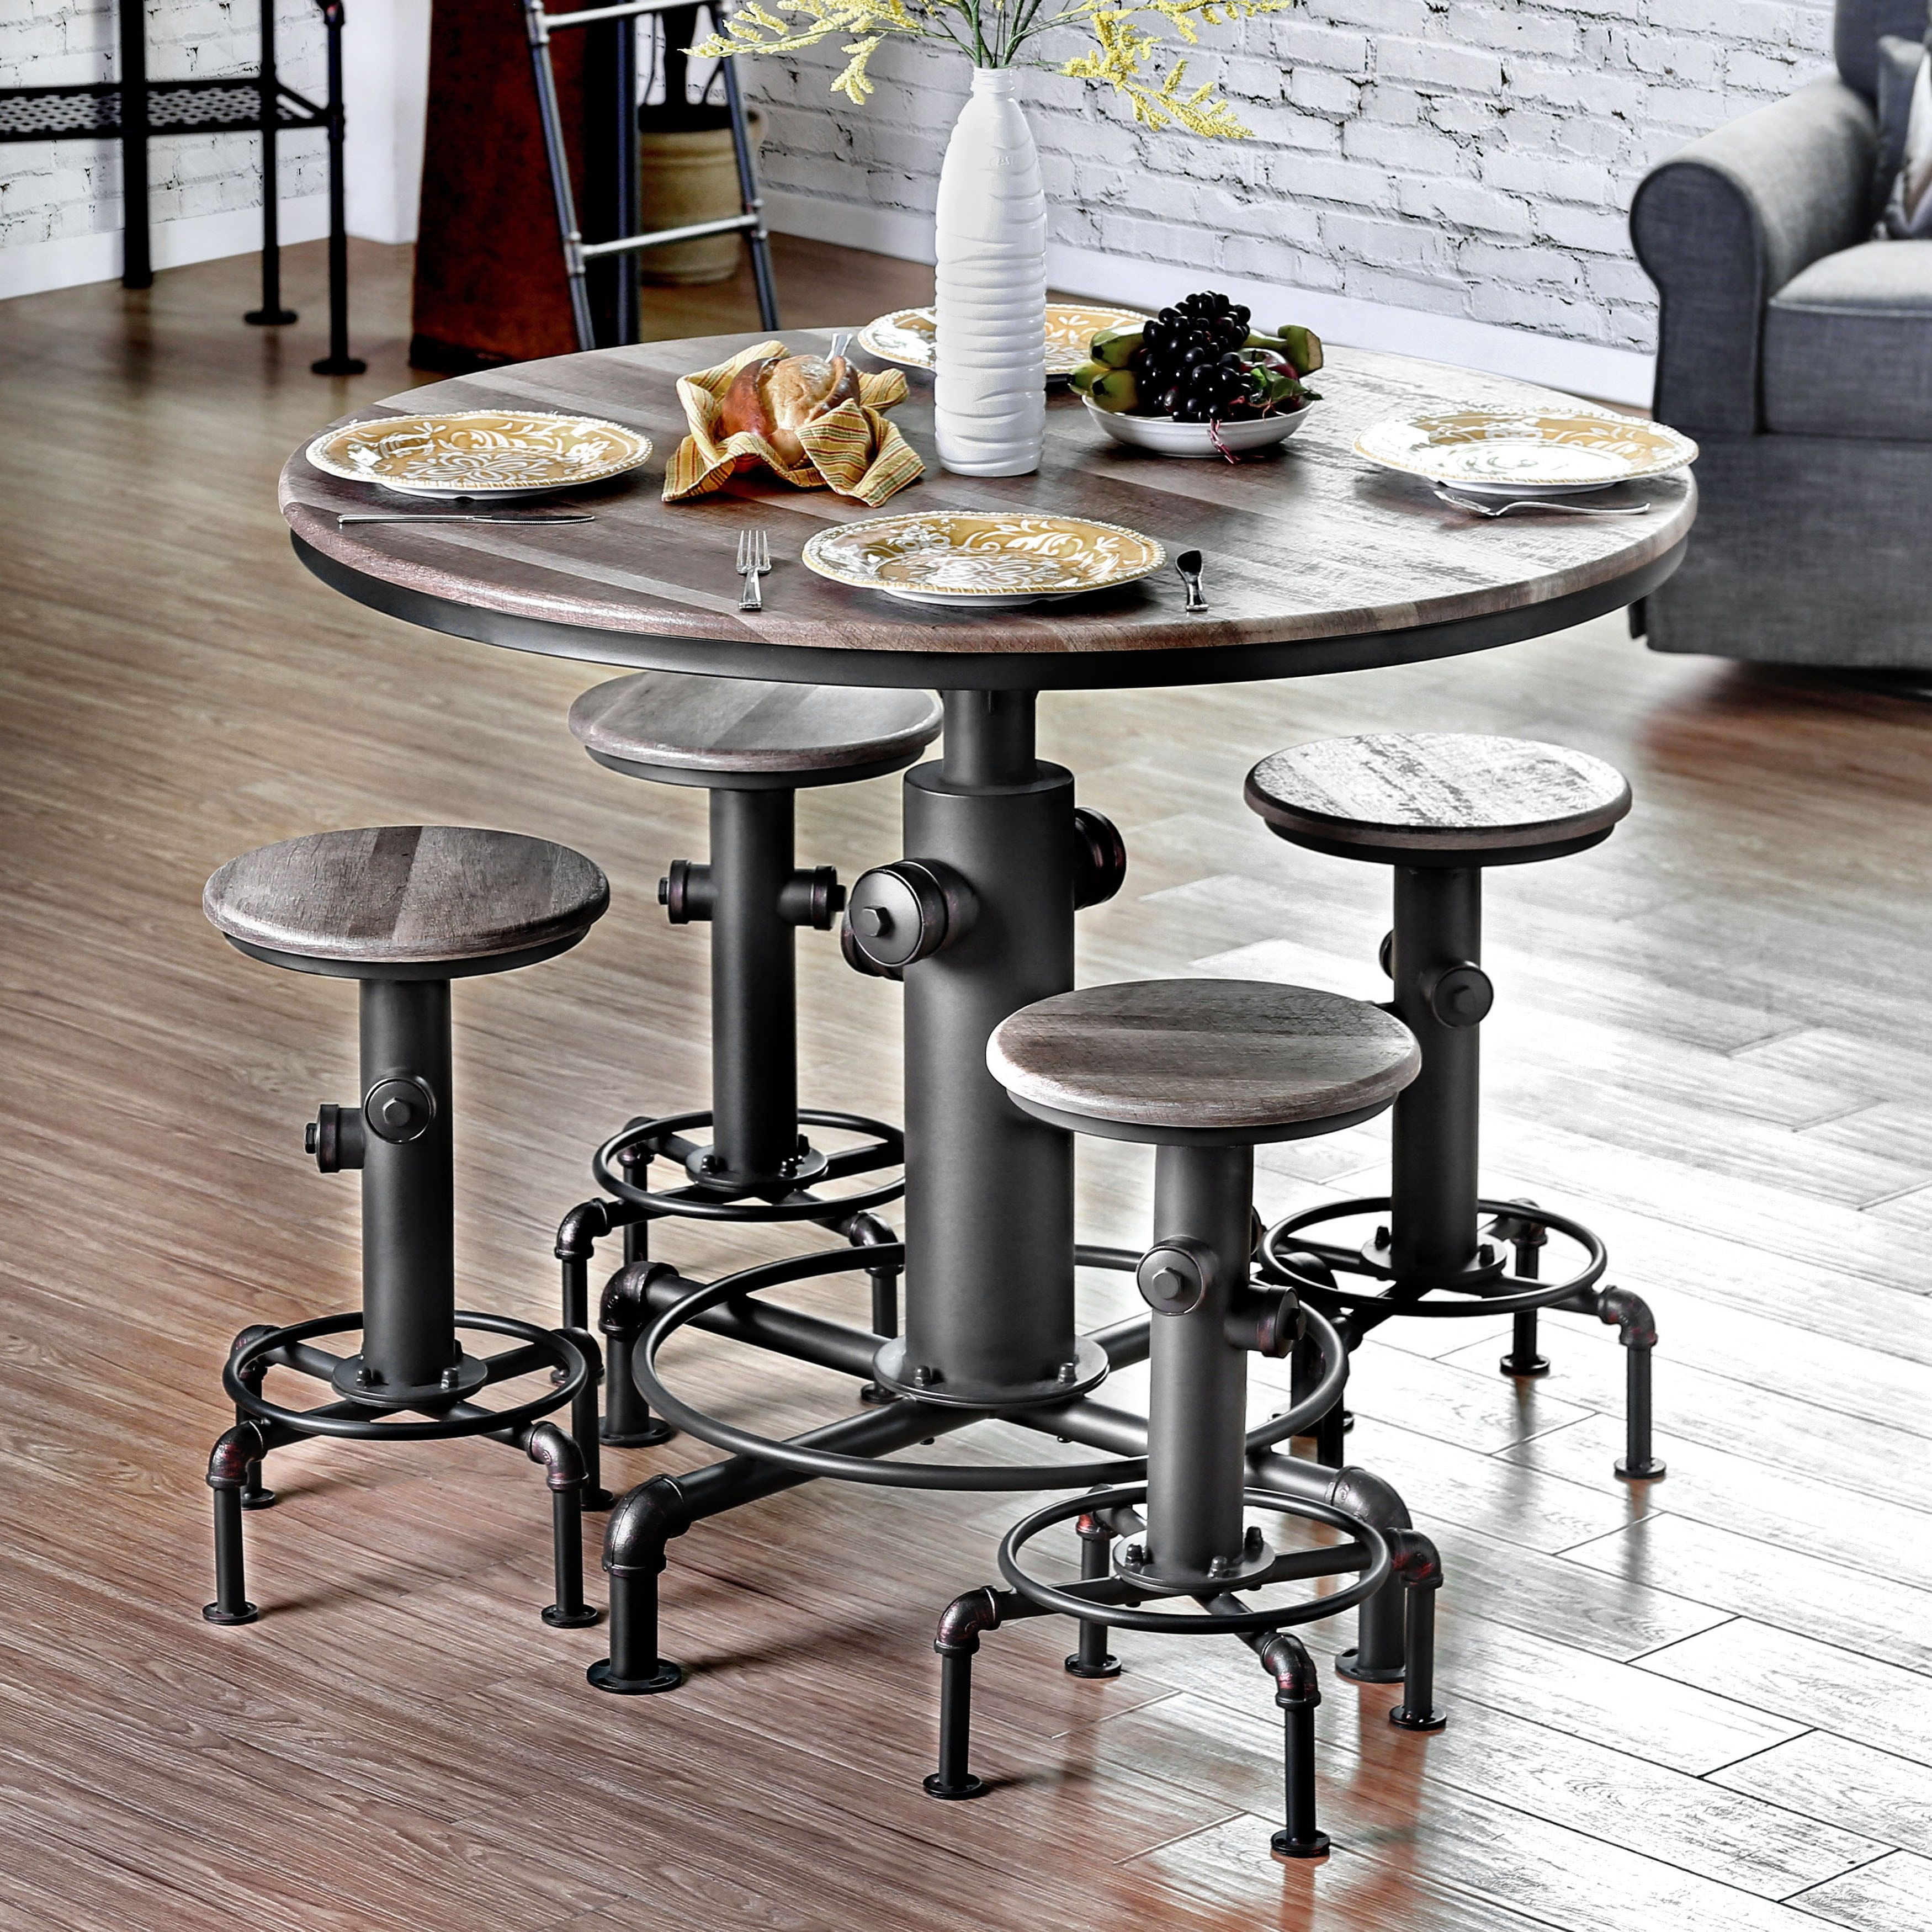 Overstock Dining Room Tables: Furniture Of America Protector Hydrant Inspired Metal